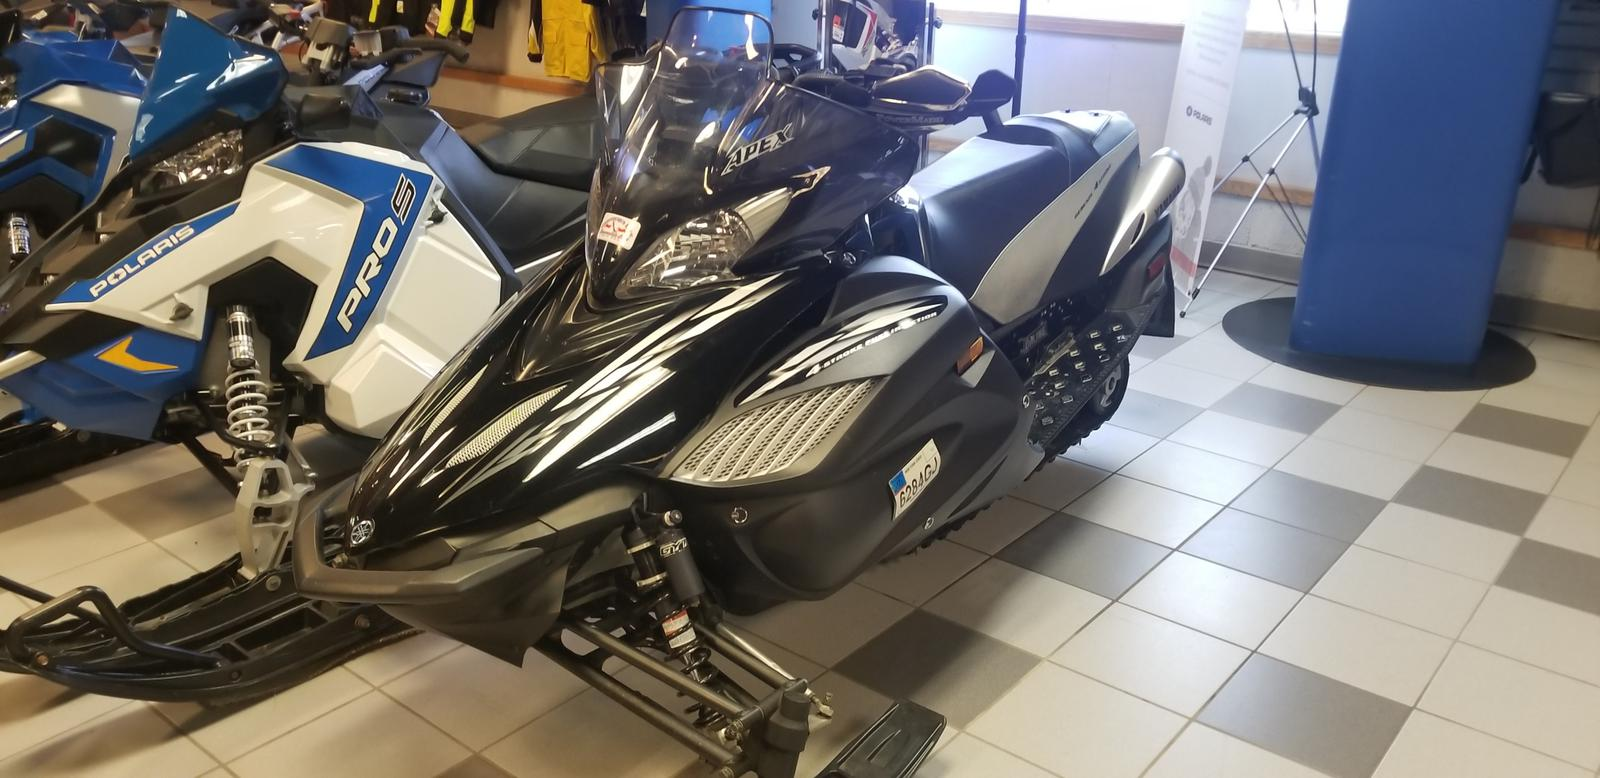 used inventory from yamaha off road express Polaris 340 Snowmobile 2006 apex gt